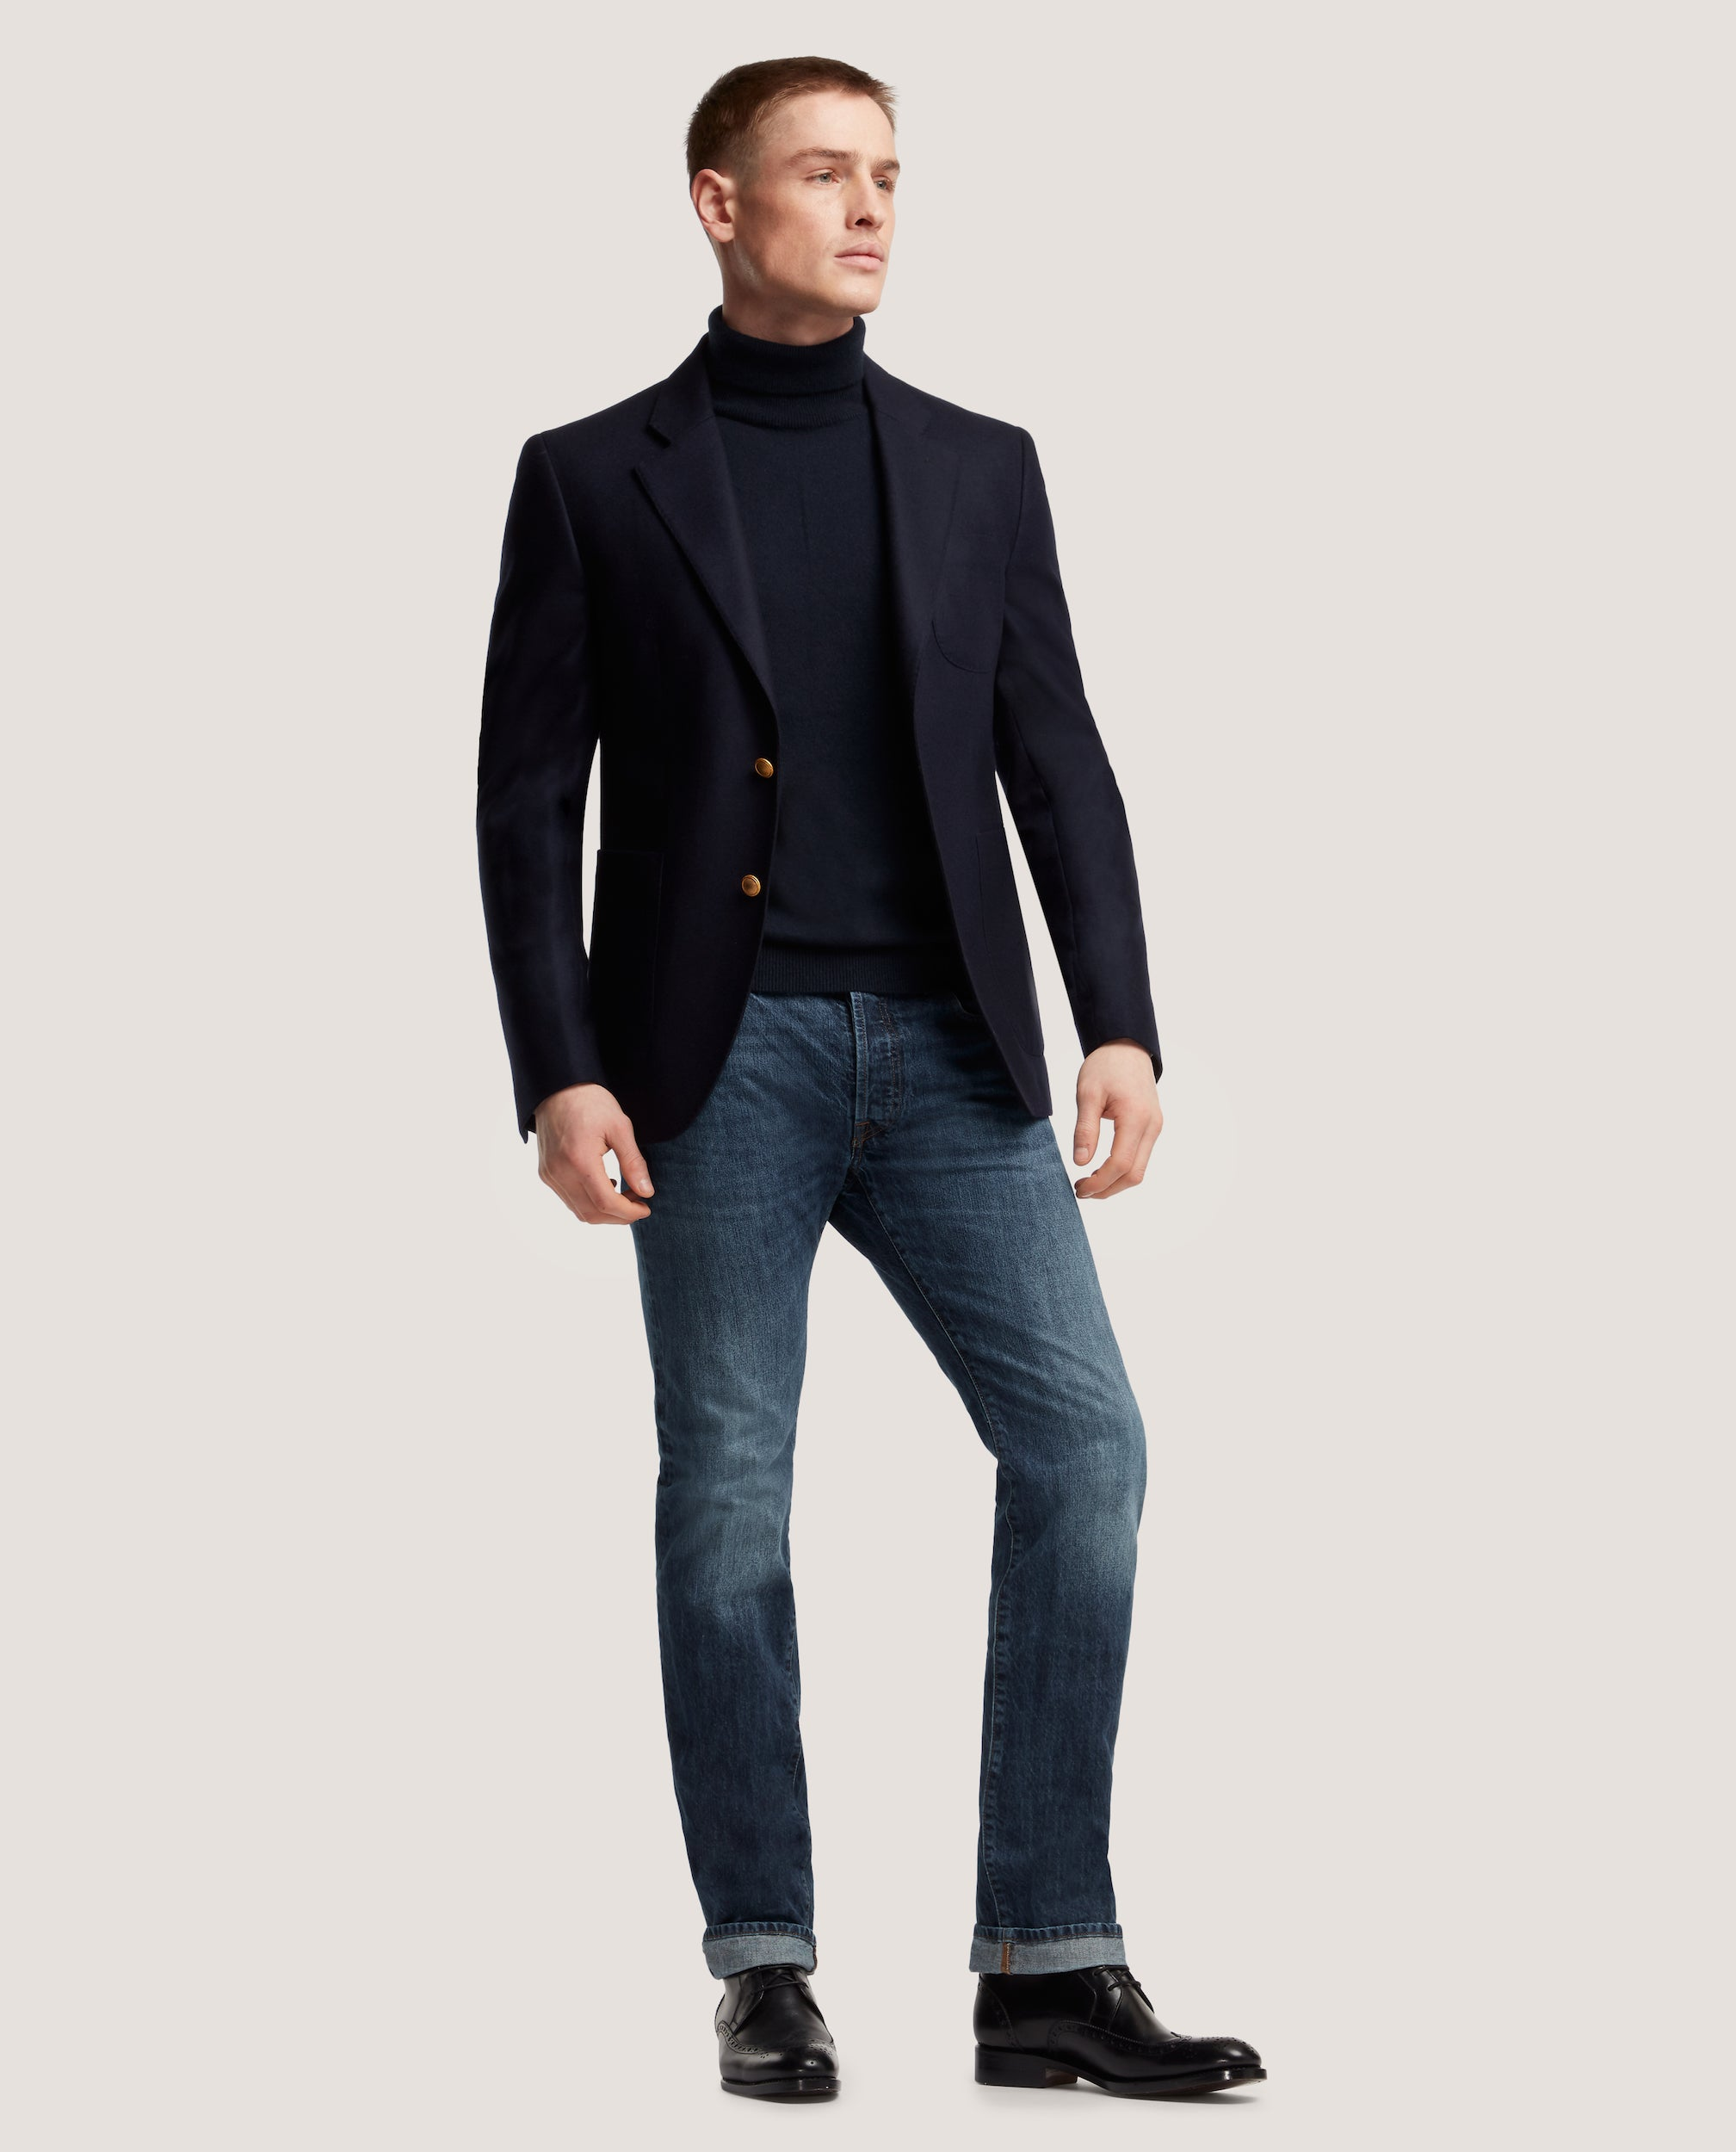 HAVRE HALF LINED BLAZER | WOOL FLANNEL by Salle Privée